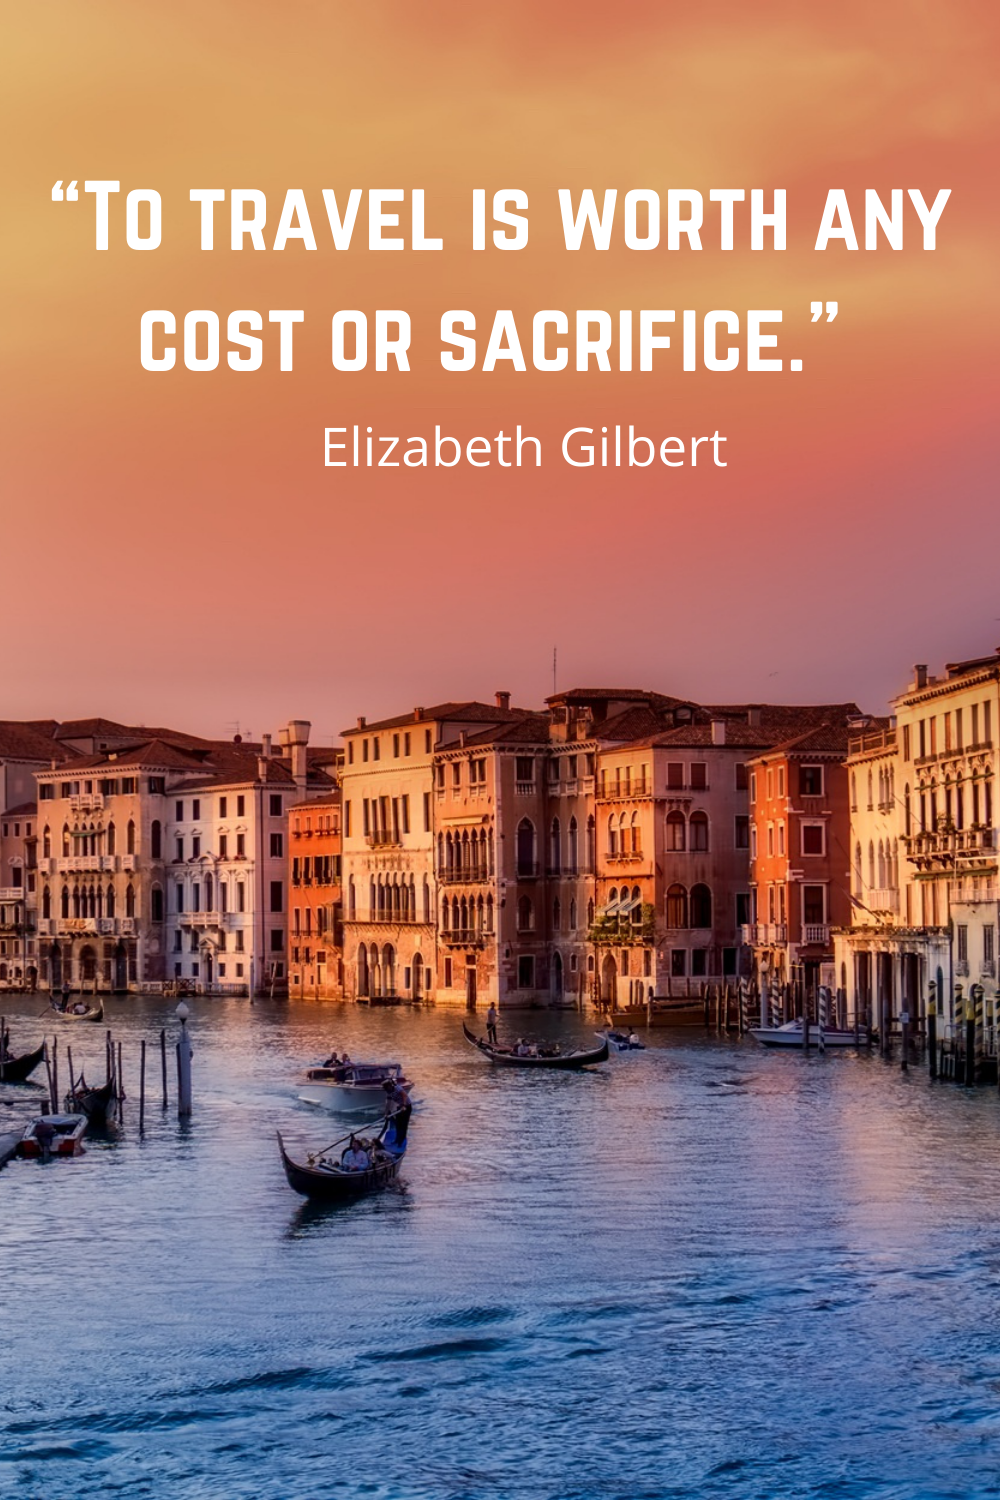 traveler quotes for your next instagram caption by elizabeth gilbert for female travelers